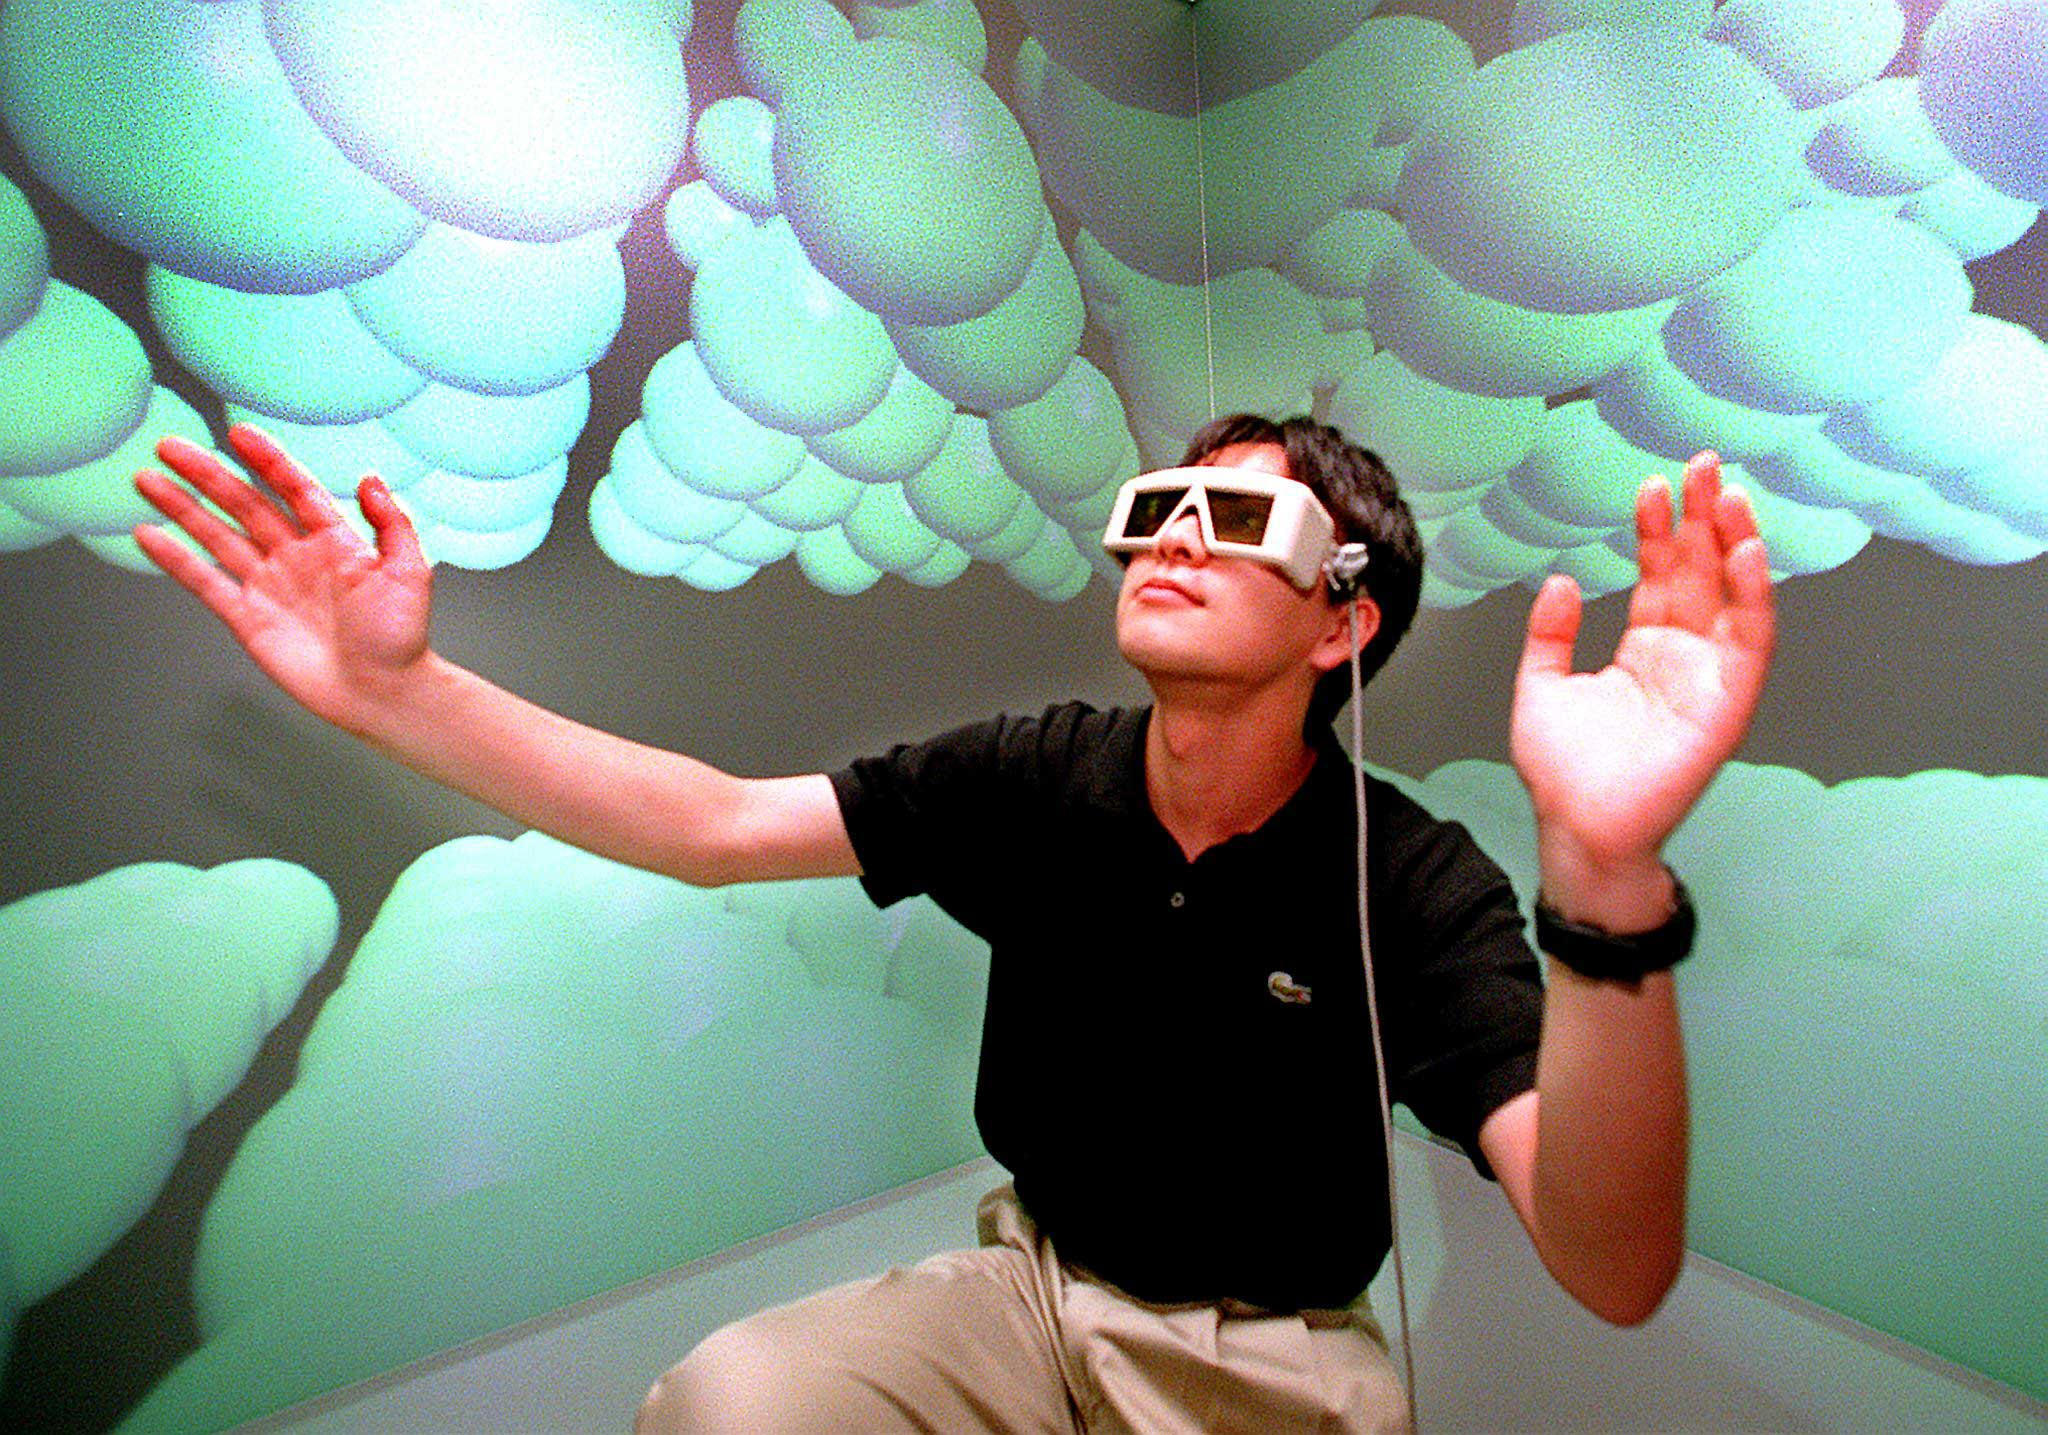 1998                                                              A researcher at Tokyo University's Intelligent Modeling Laboratory wearing 3-D glasses, extending his hands to touch carbon atoms in the microscopic world at the laboratory's virtual reality room.